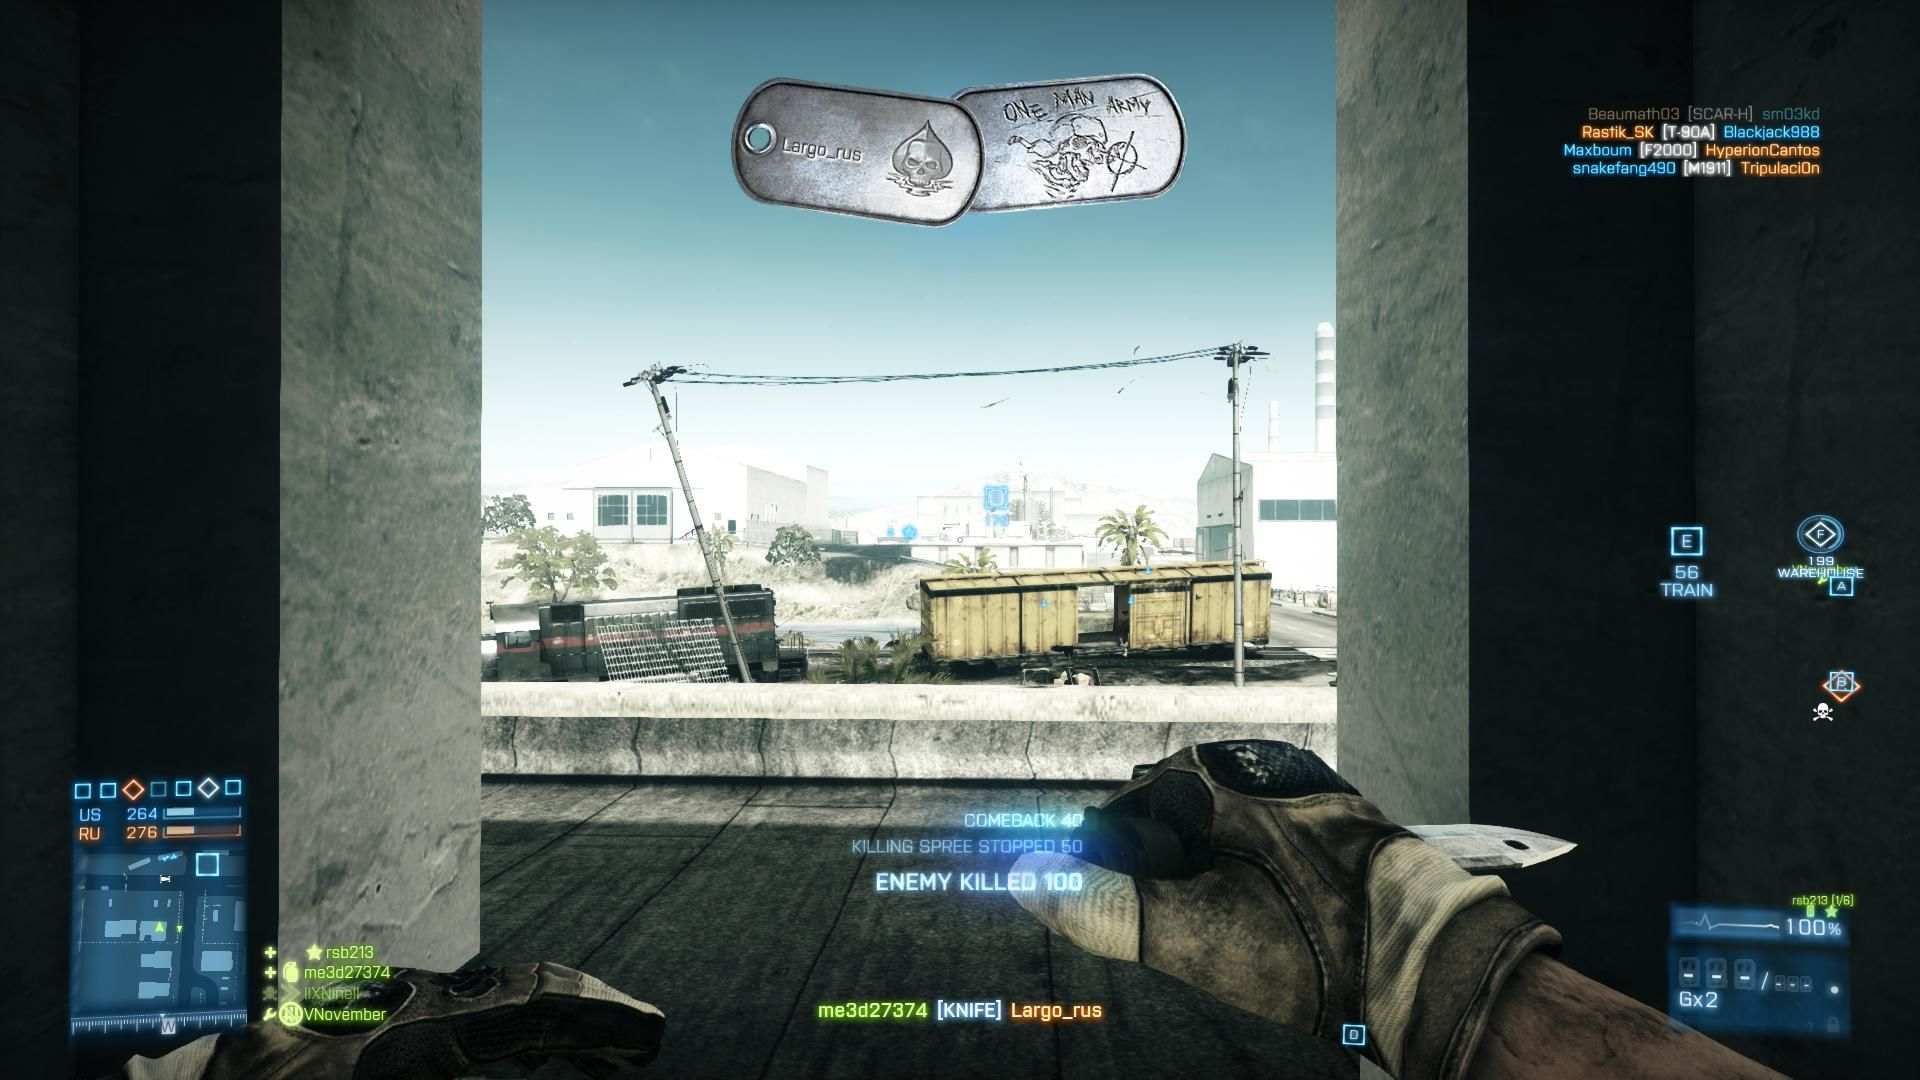 Battlefield 3: Back to Karkand Windows Sneaking up on enemy and knifed them collecting dog tags near train wreck on Karkand map